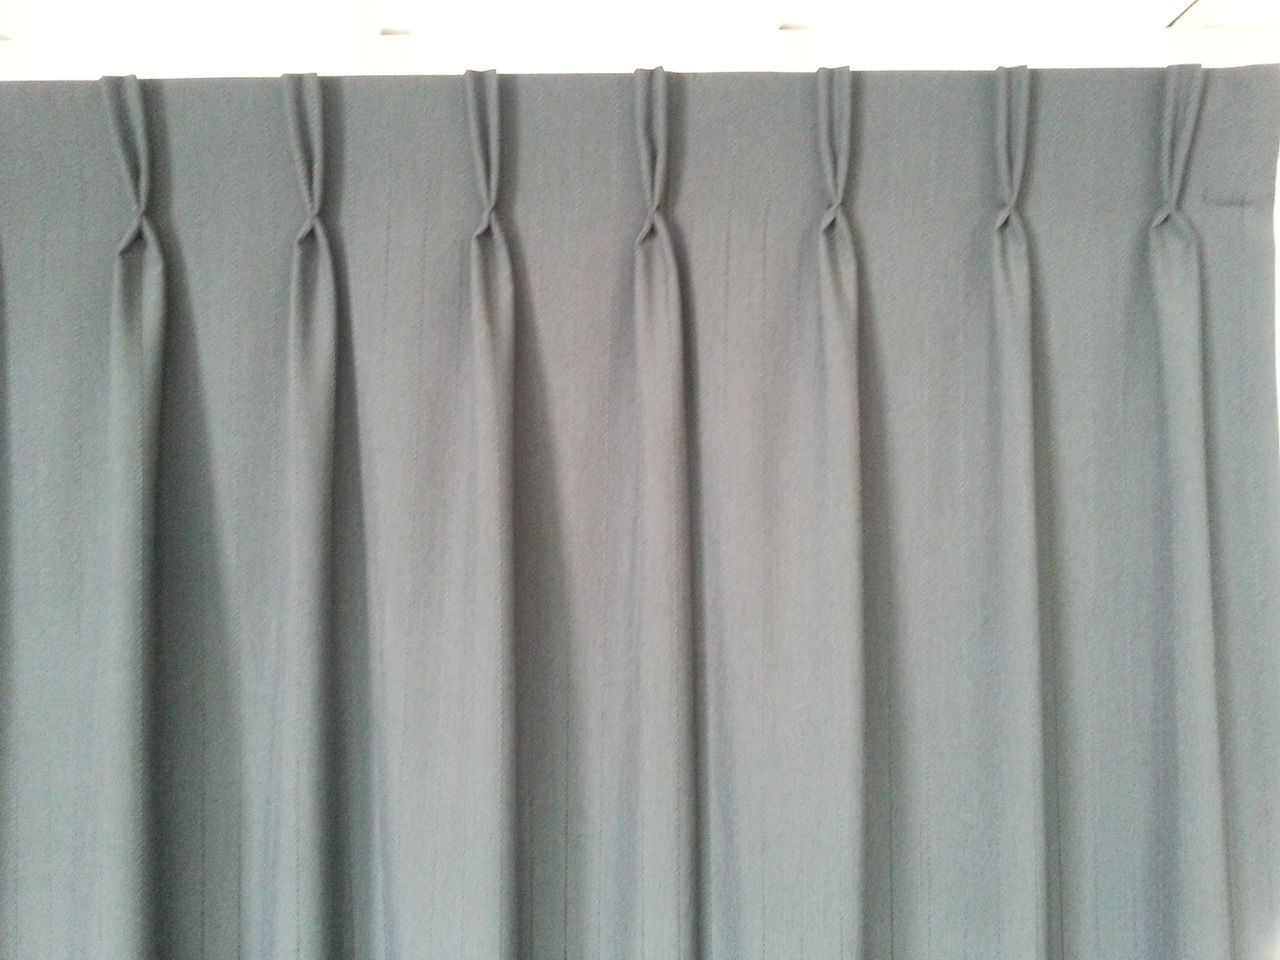 Curtain pleats integralbookcom for Types of pleat curtains